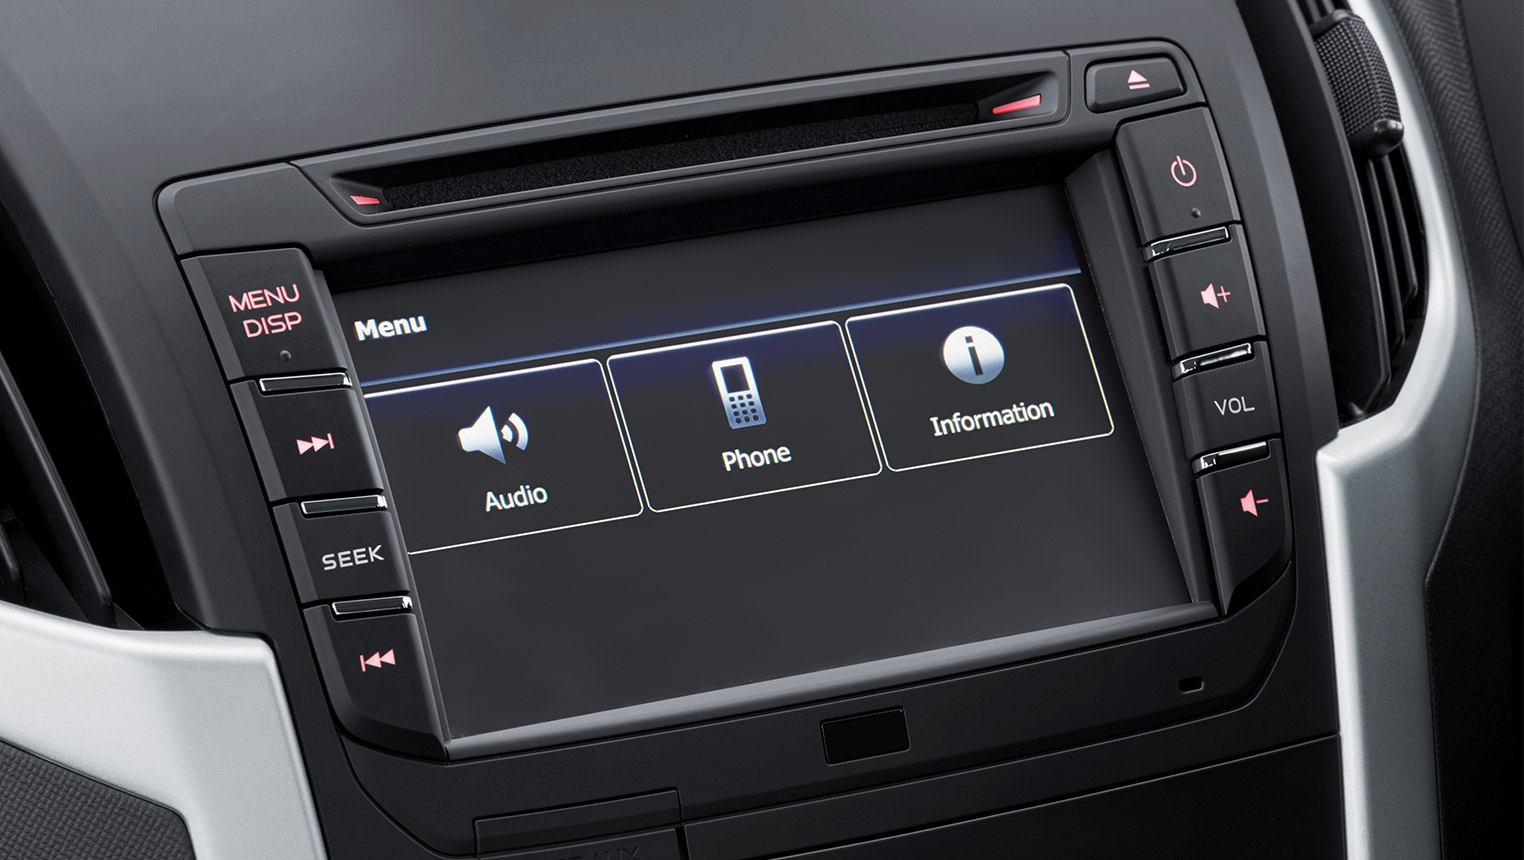 Touchscreen Display Audio System Image